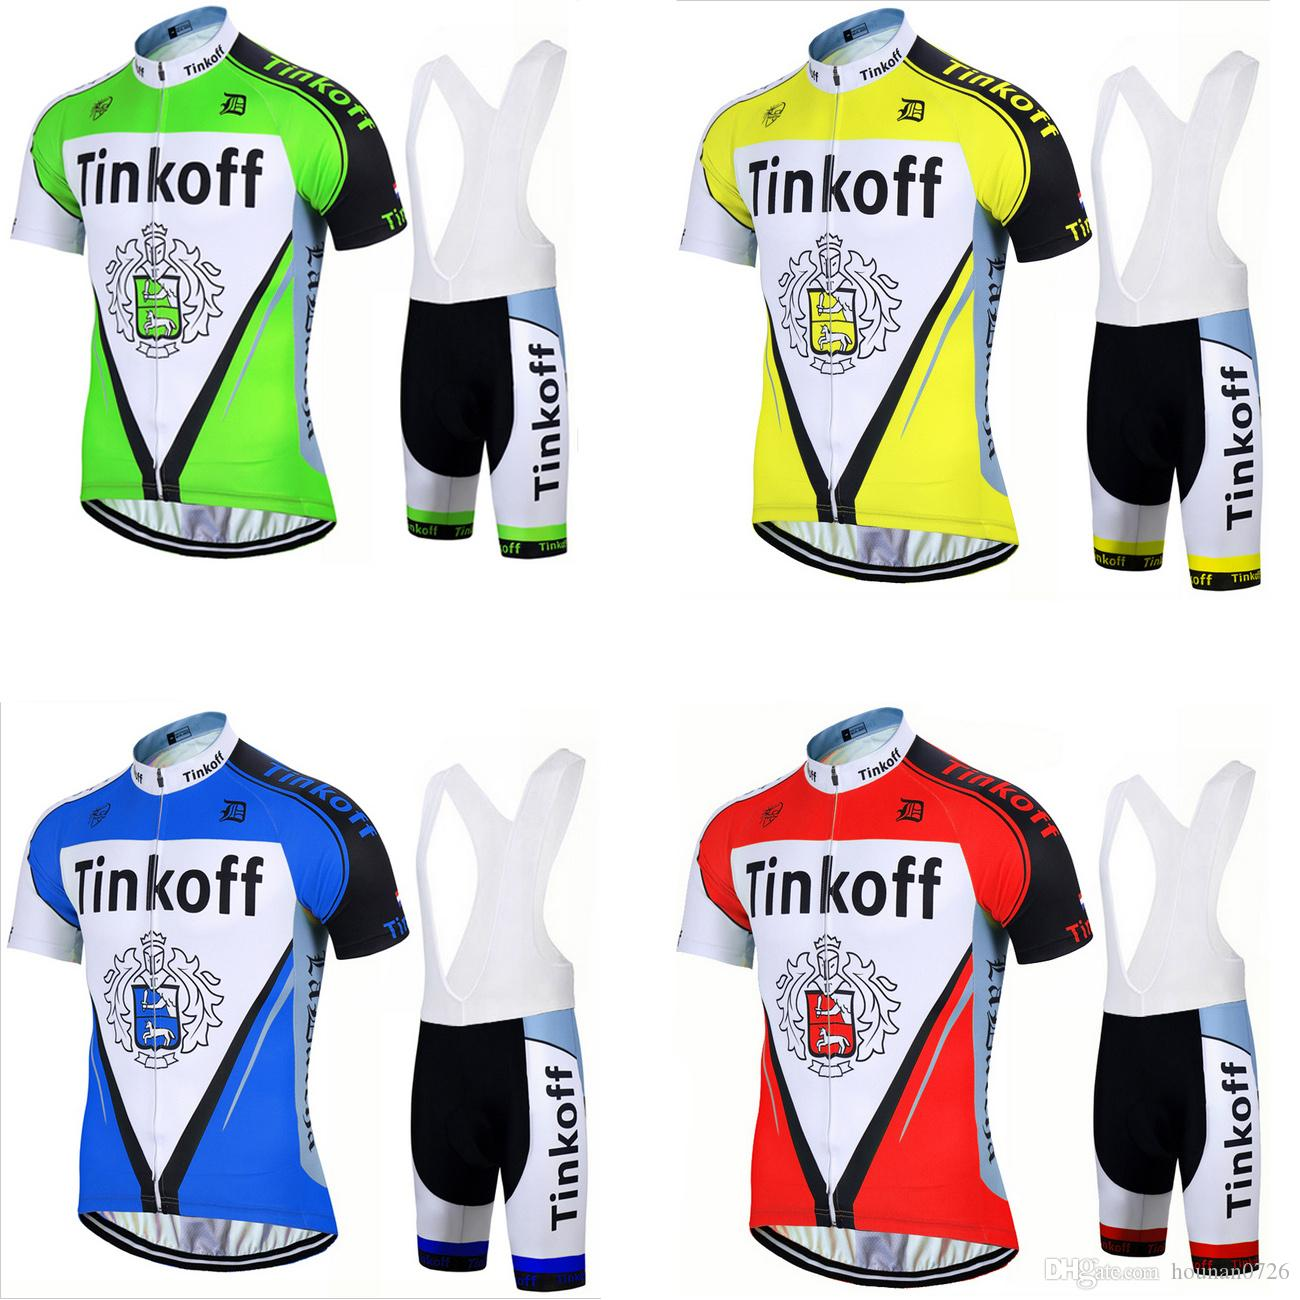 4 Styles Tinkoff Team Ropa Ciclismo Pro Men s Short Sleeve Cycling Jersey  Set. Breathable Mountain Bike Clothes Bicycle Sportswear. Gel Pad Cycling  Clothing ... 3c4ba3777